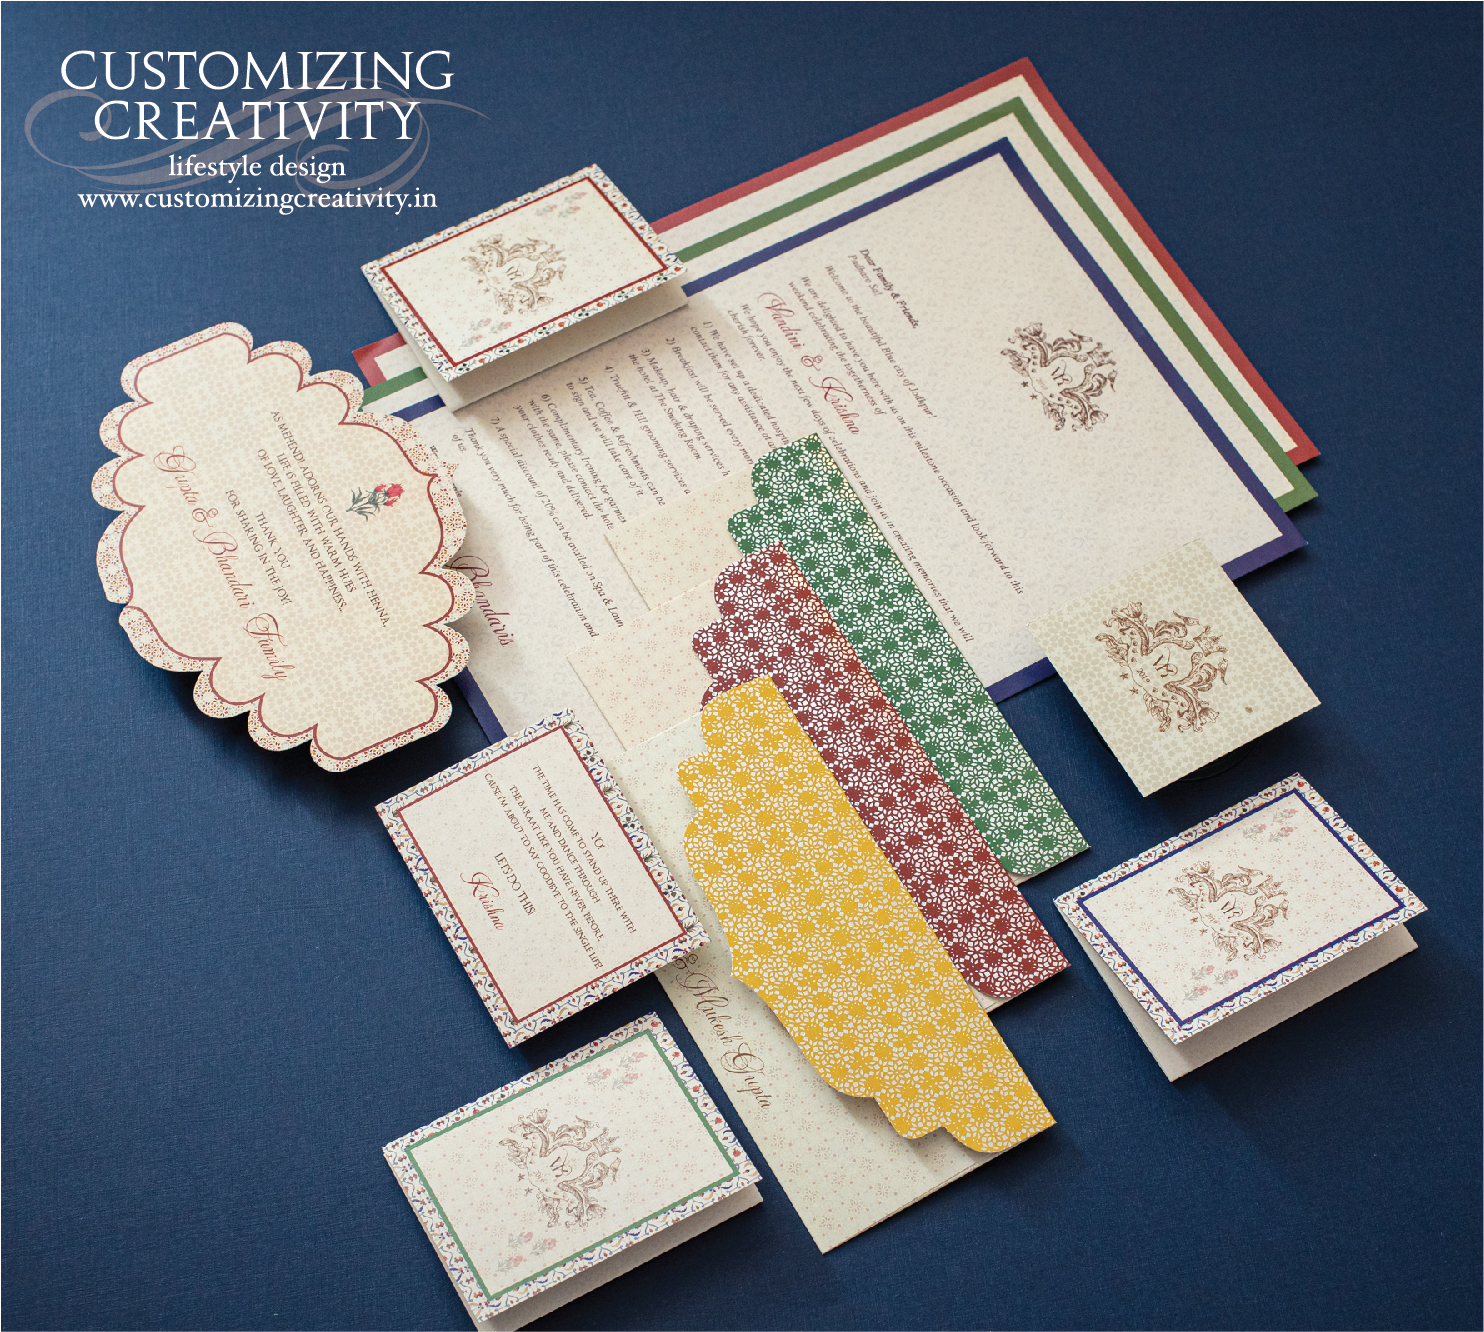 Wedding Invitation cards, wedding invites, save the date, wedding logos, Indian wedding invites, Indian wedding cards